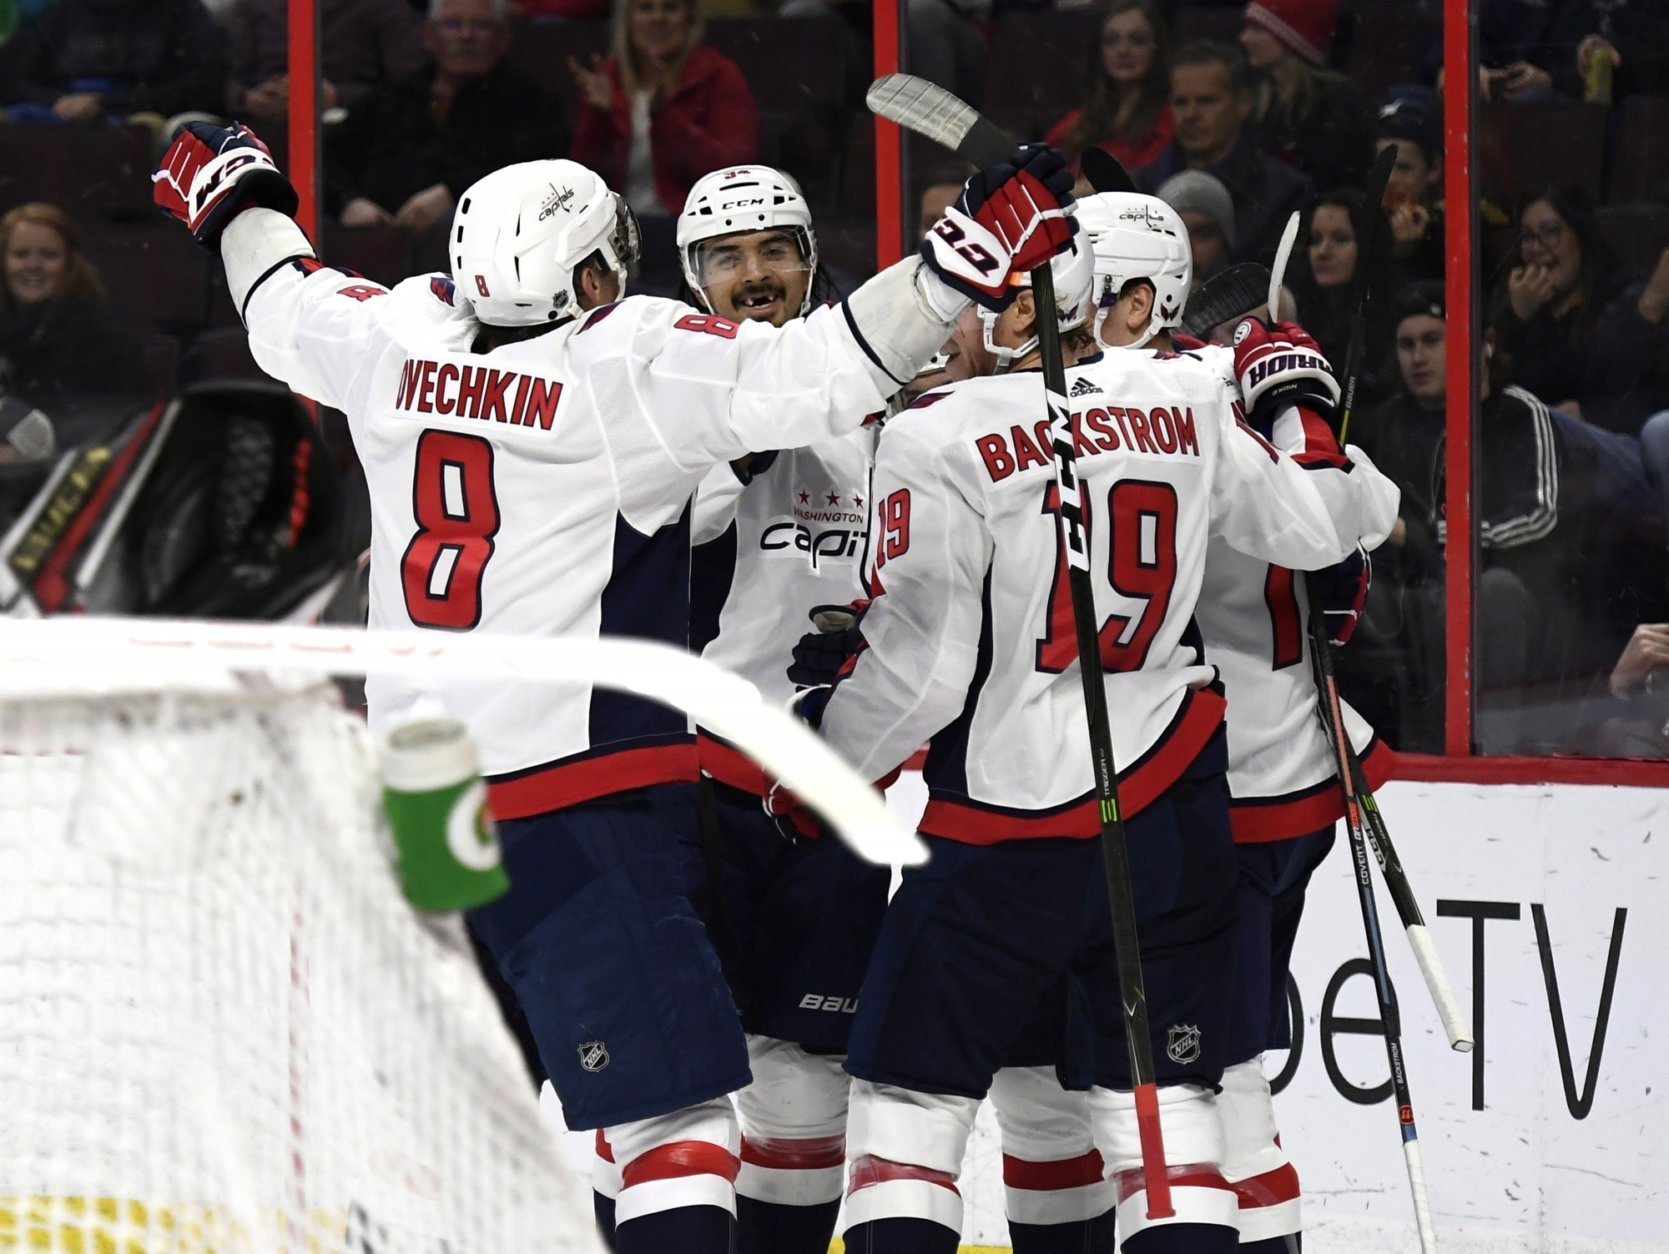 Washington Capitals players celebrate a goal against the Ottawa Senators during the first period of an NHL hockey game, Saturday, Dec. 29, 2018 in Ottawa, Ontario. (Justin Tang/The Canadian Press via AP)